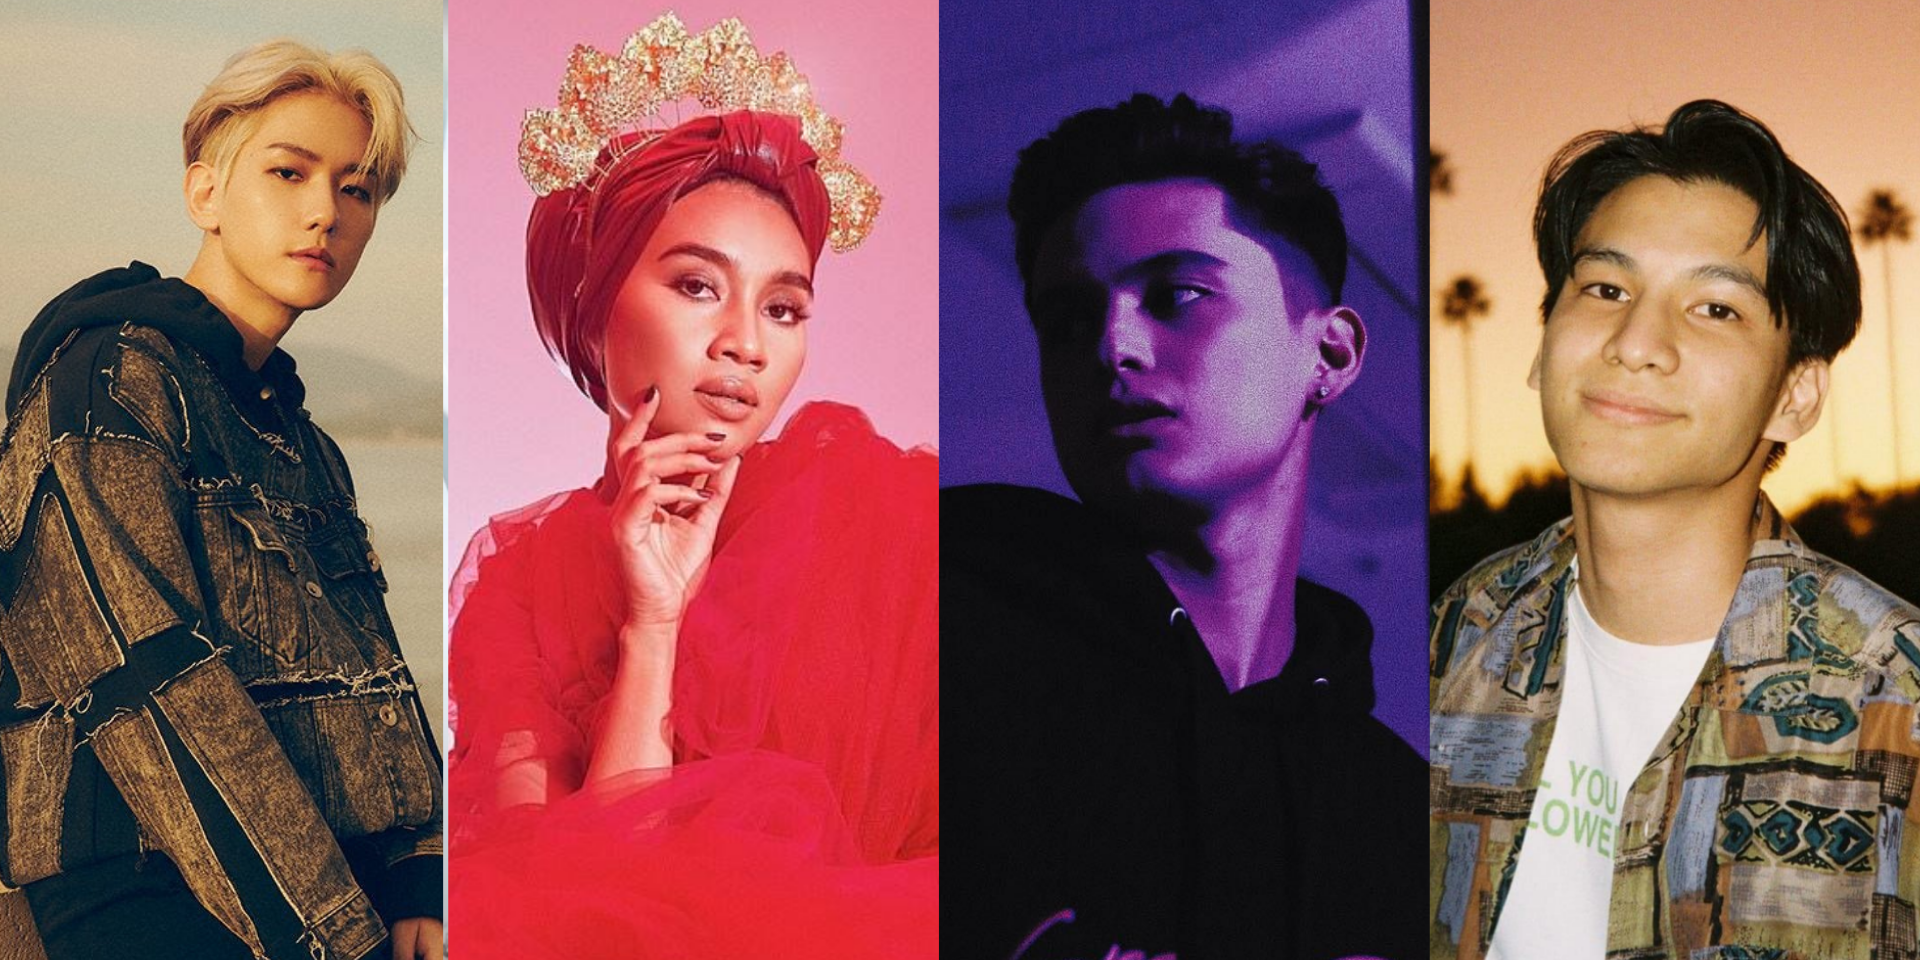 OVERPASS Music Festival unveils virtual edition lineup – Baekhyun, James Reid, Yuna, Phum Viphurit, and more